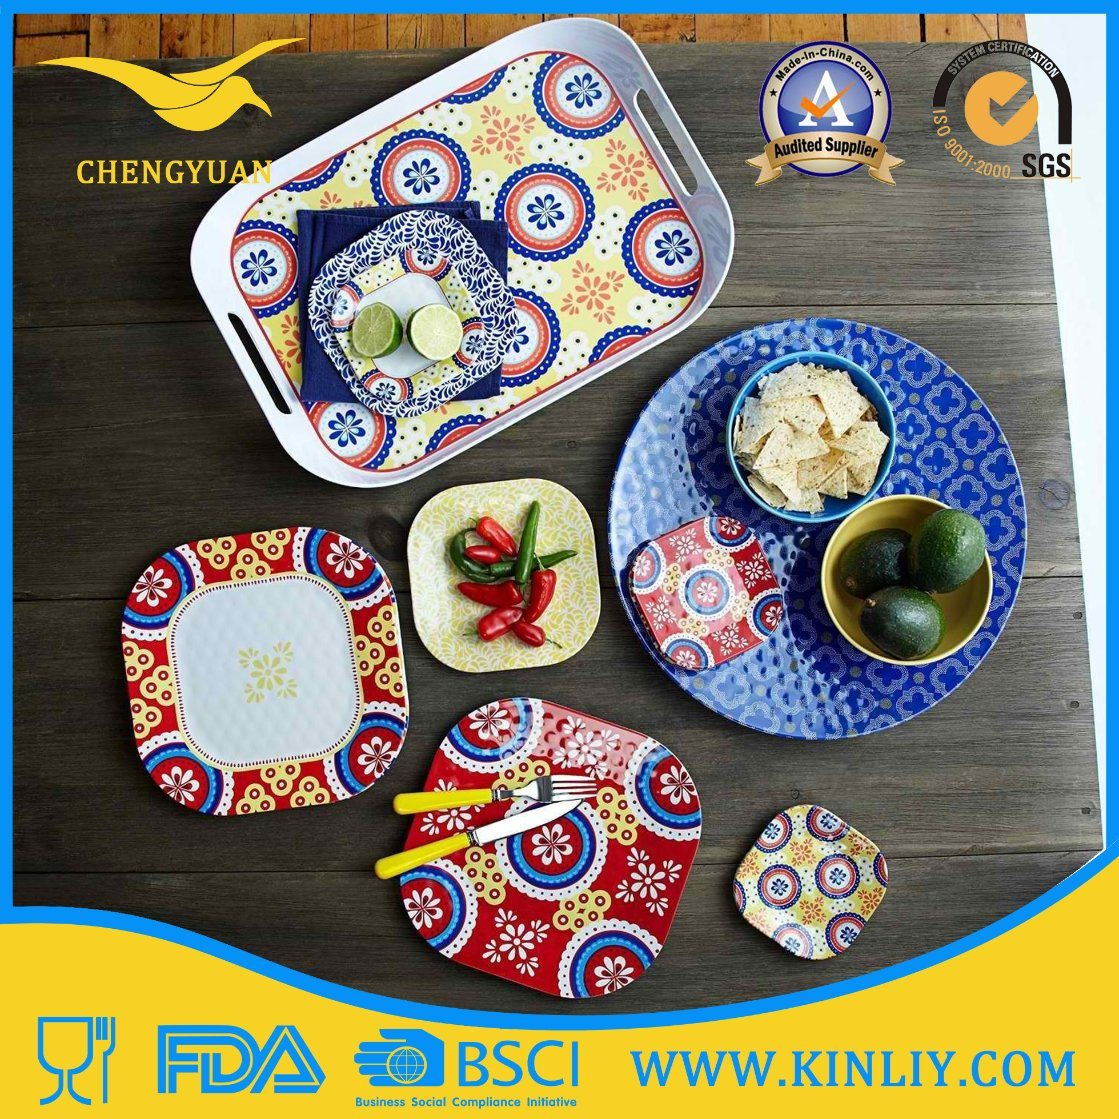 Cheap European China Us Melamine Plastic Restaurant Safe Round Square Modern Home Food Set Dish Dishware Dinner Plate Set Cup Bowl Tray Tableware Dinnerware